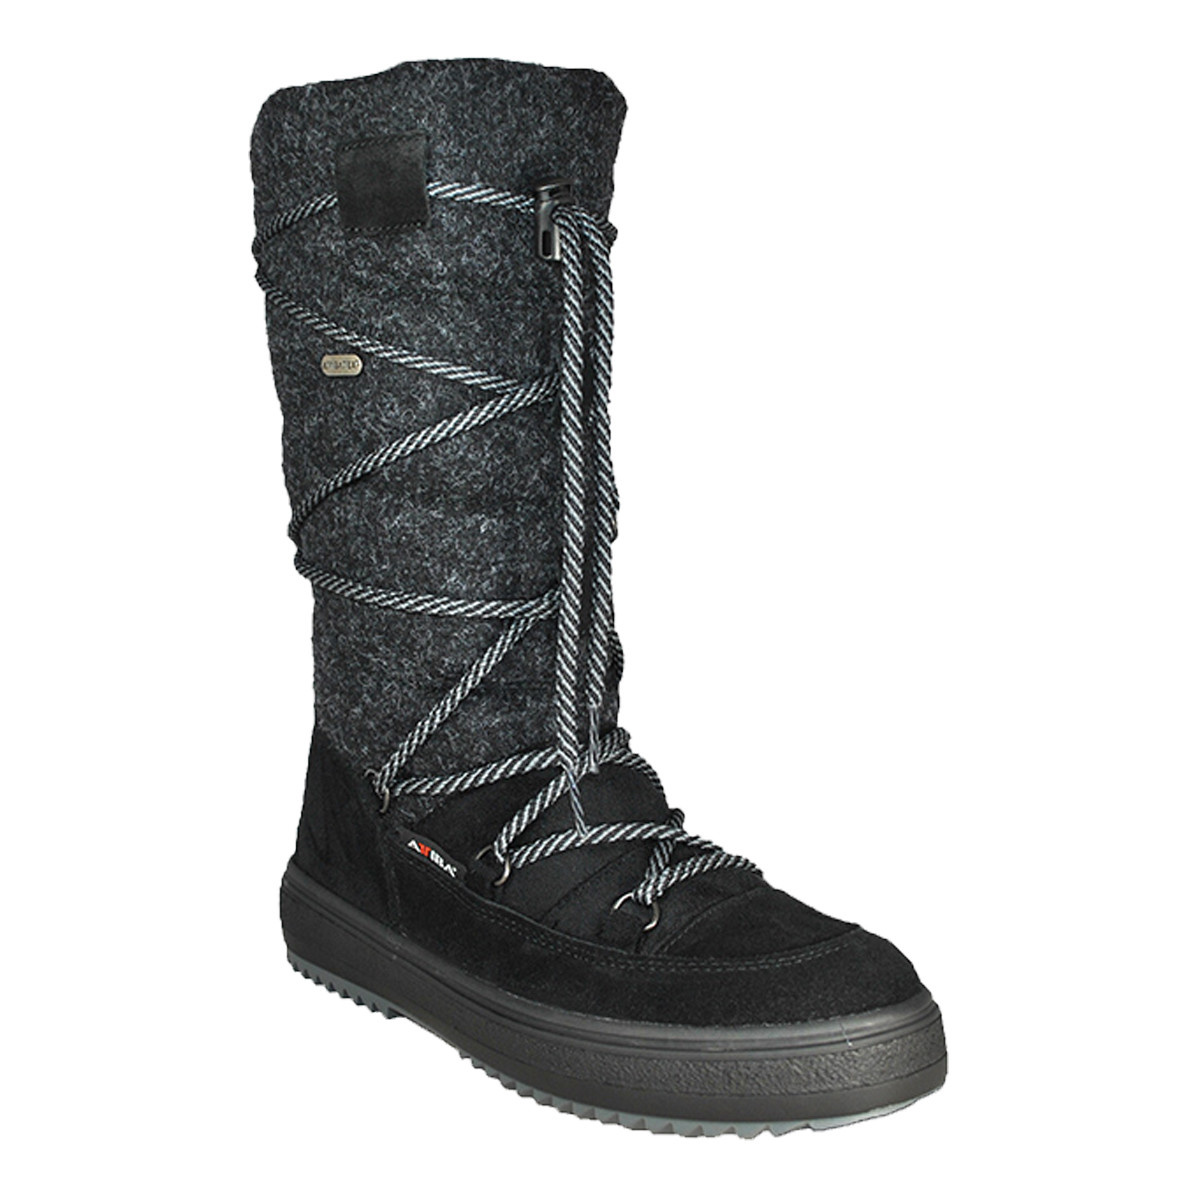 Attiba Attiba Women's 82412 Black Winter Boot